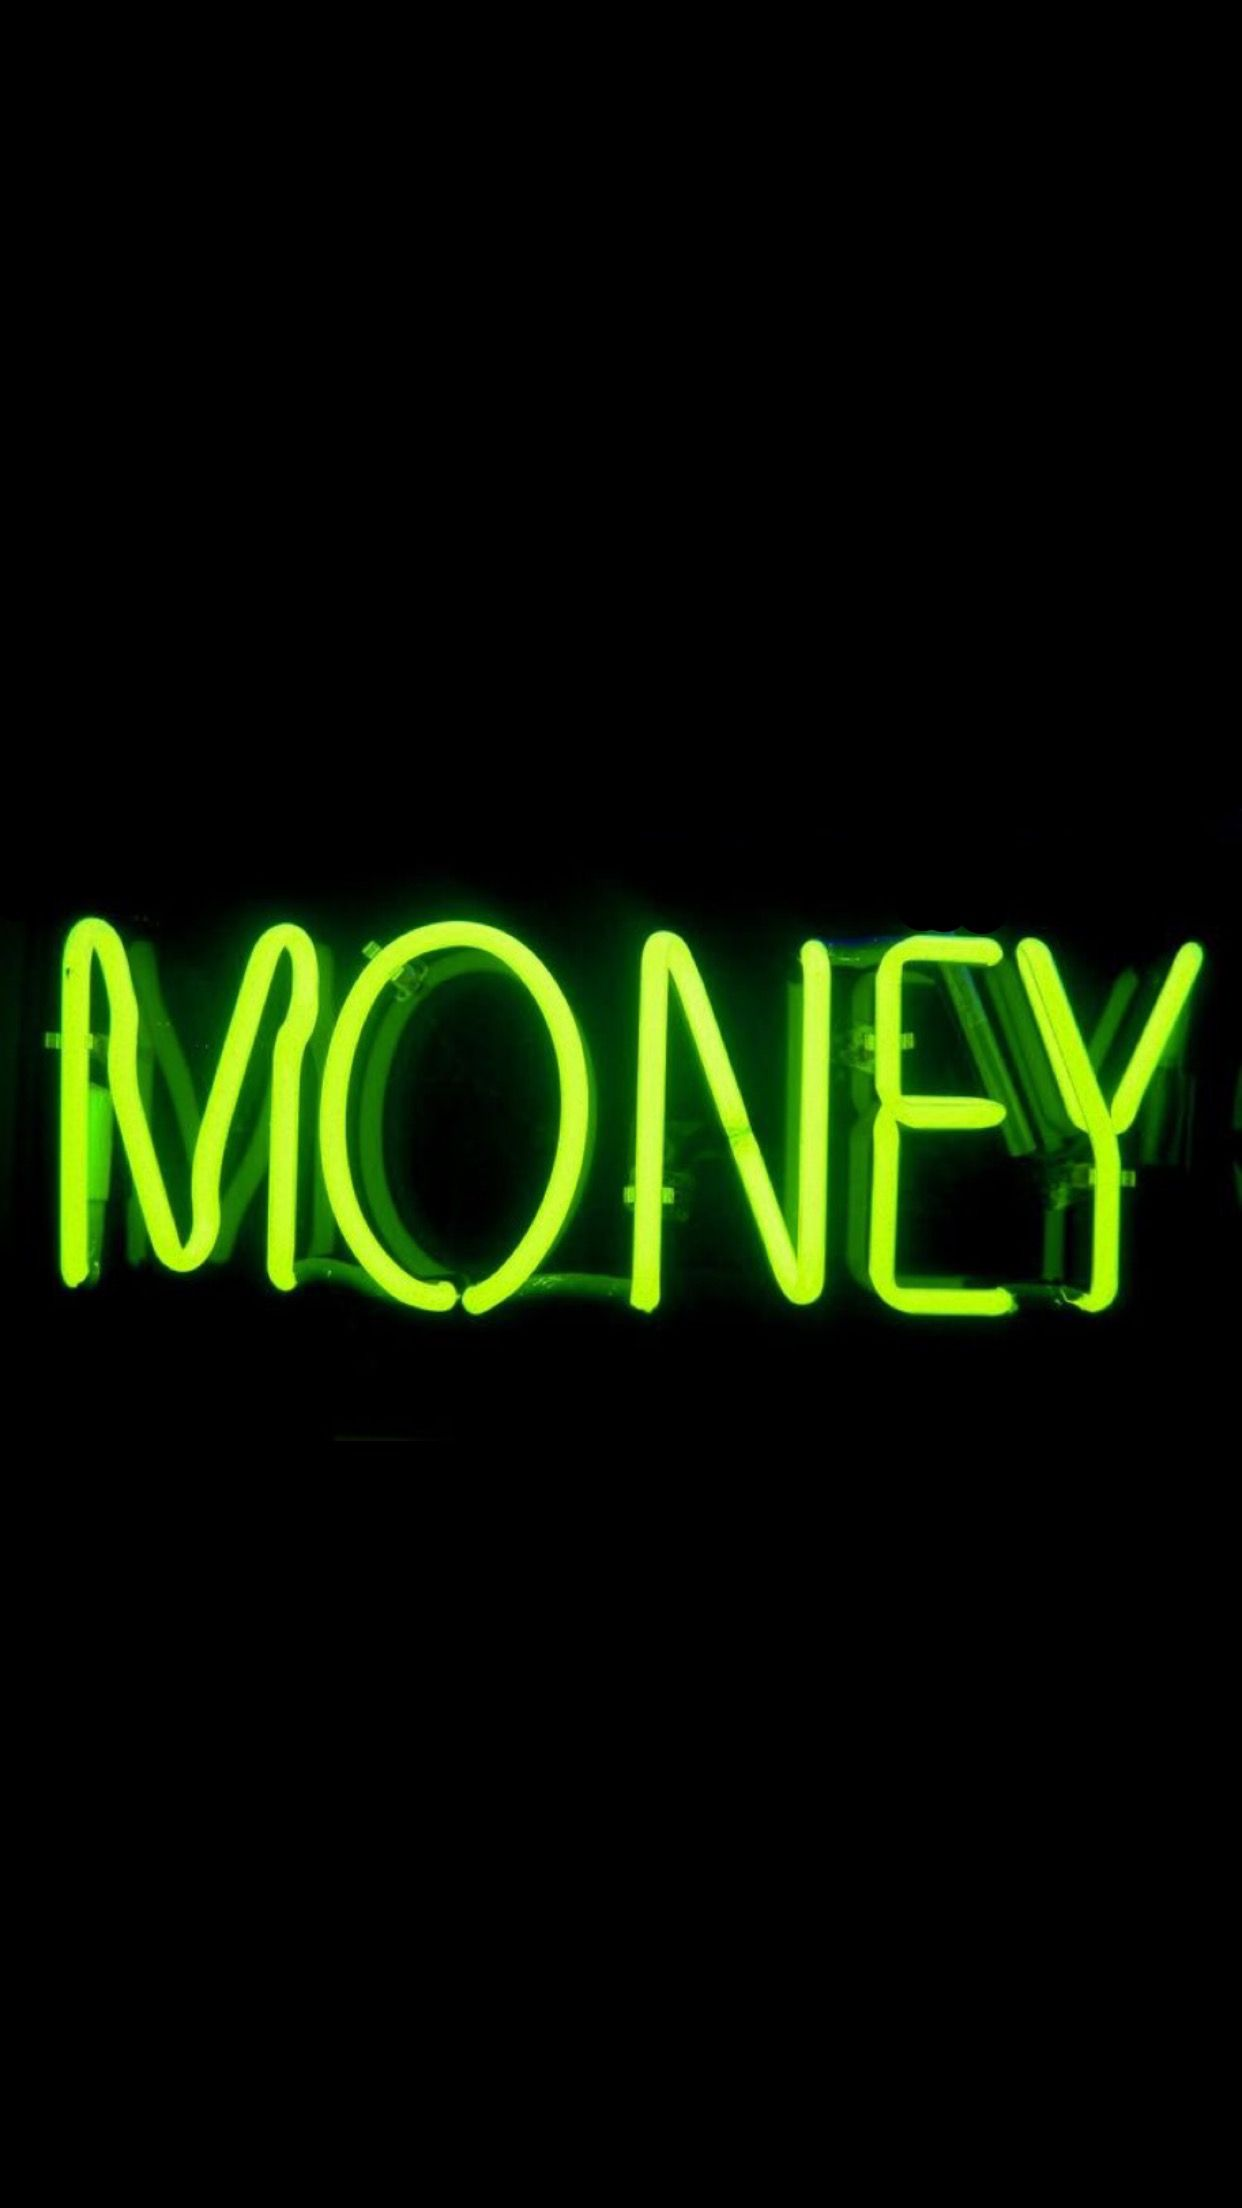 Money Green Neon Sign Wallpaper Neon Quotes Neon Wallpaper Wallpaper Iphone Neon